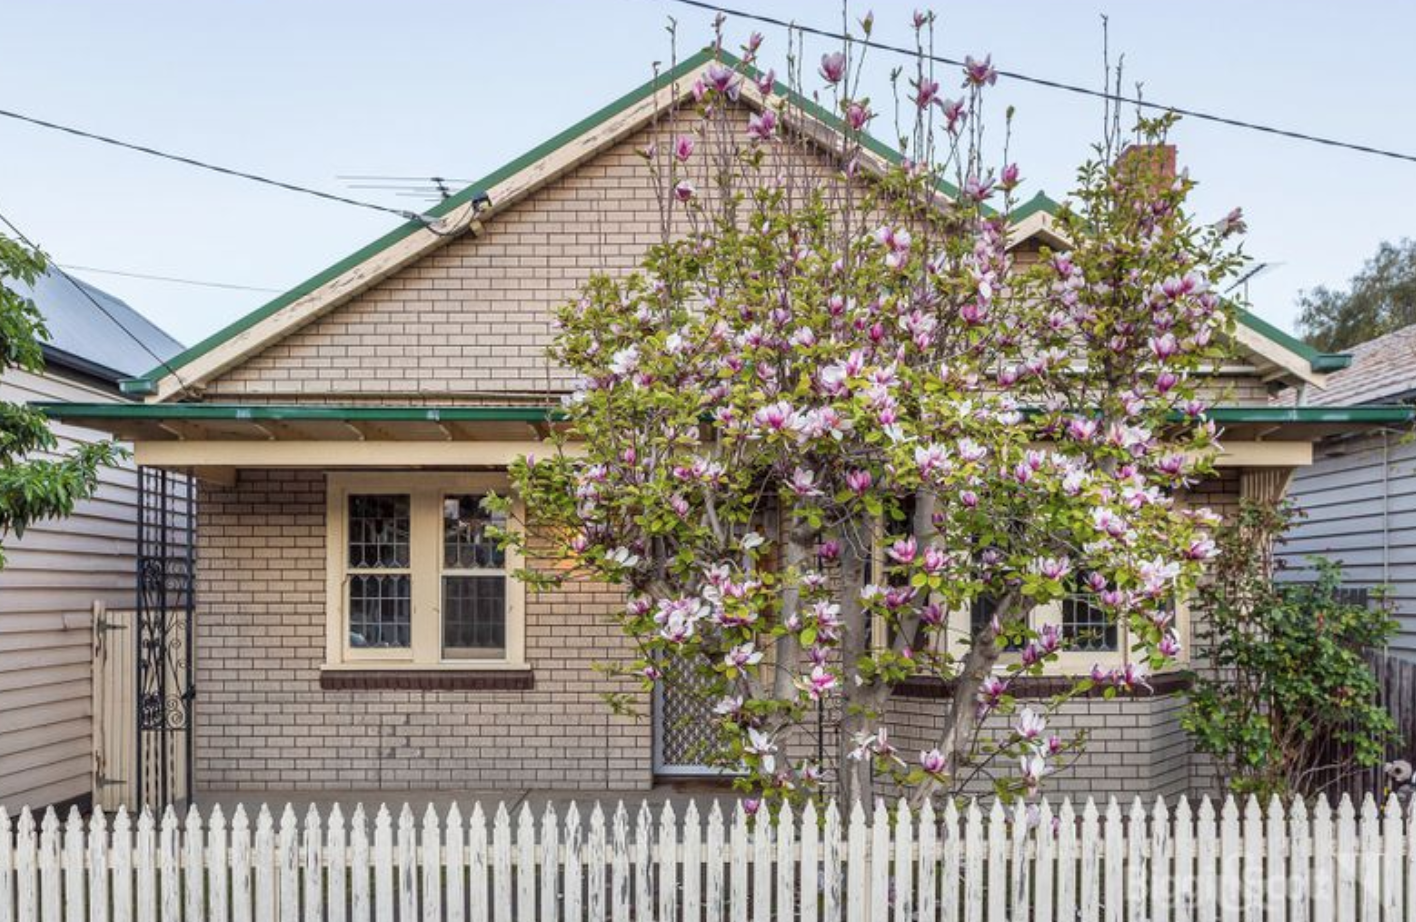 Footscray: this place could potentially have gone for $200K more 12 months ago.